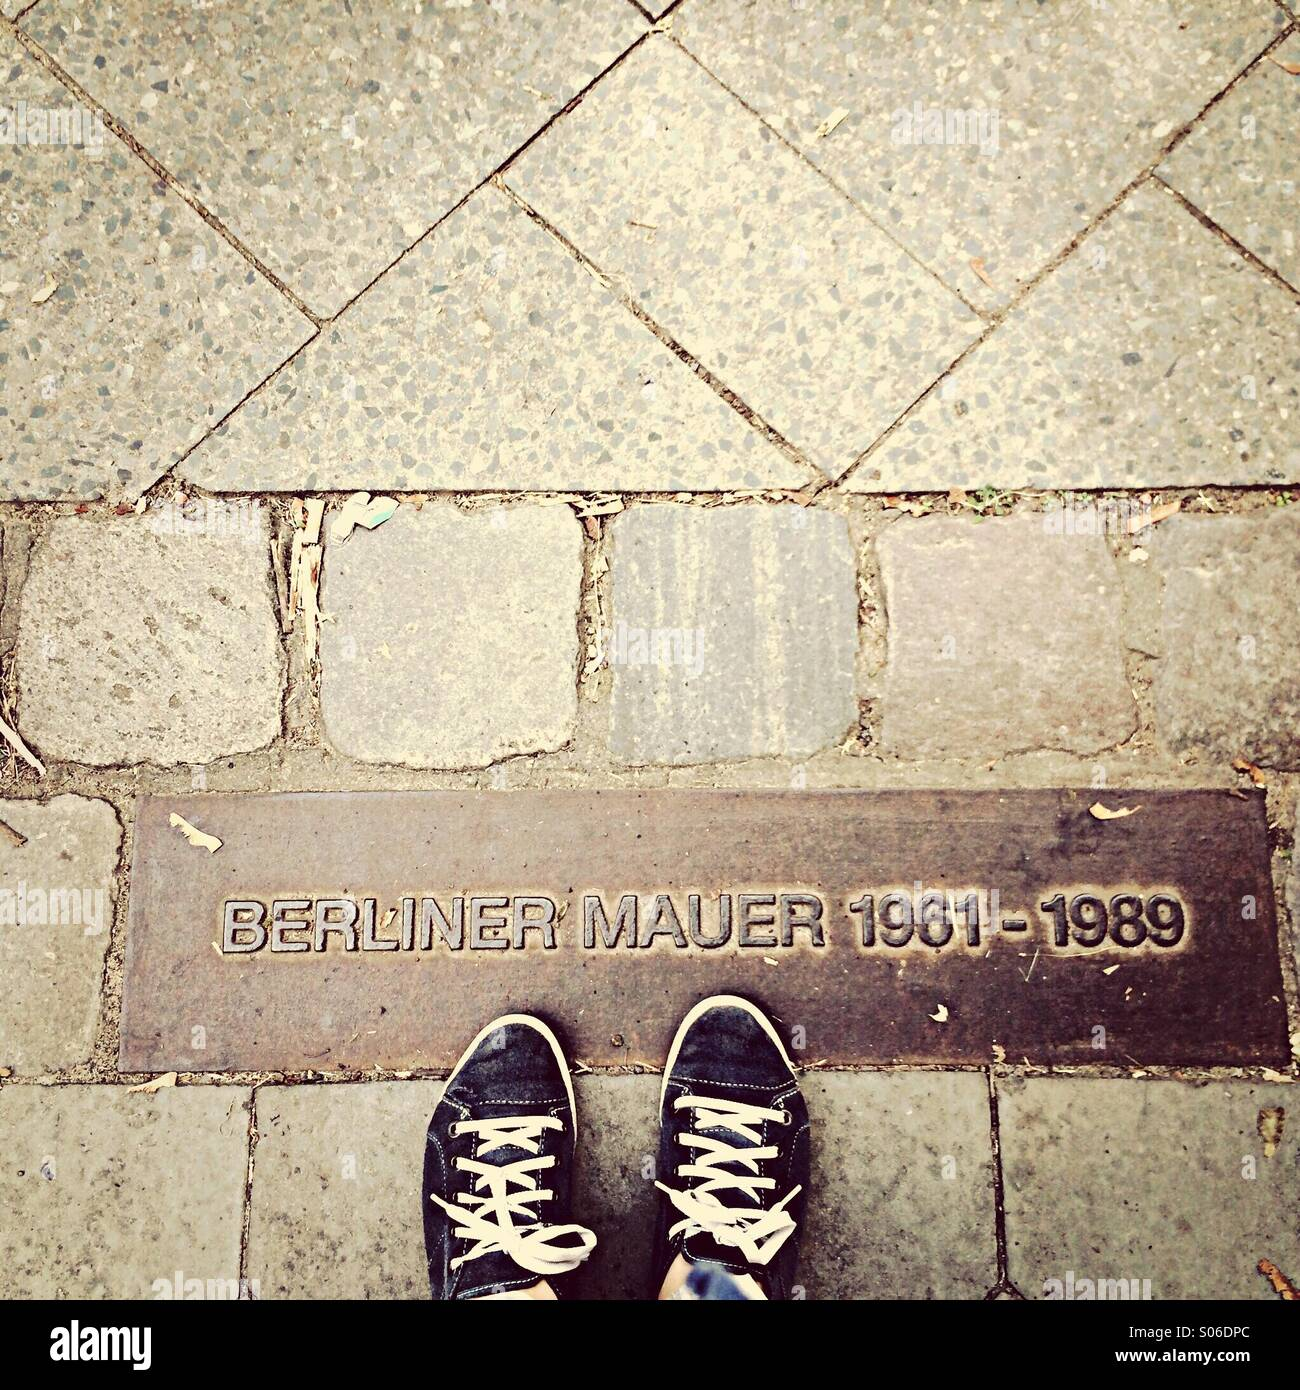 Berlin Wall memorial stones in pavement with feet - Stock Image